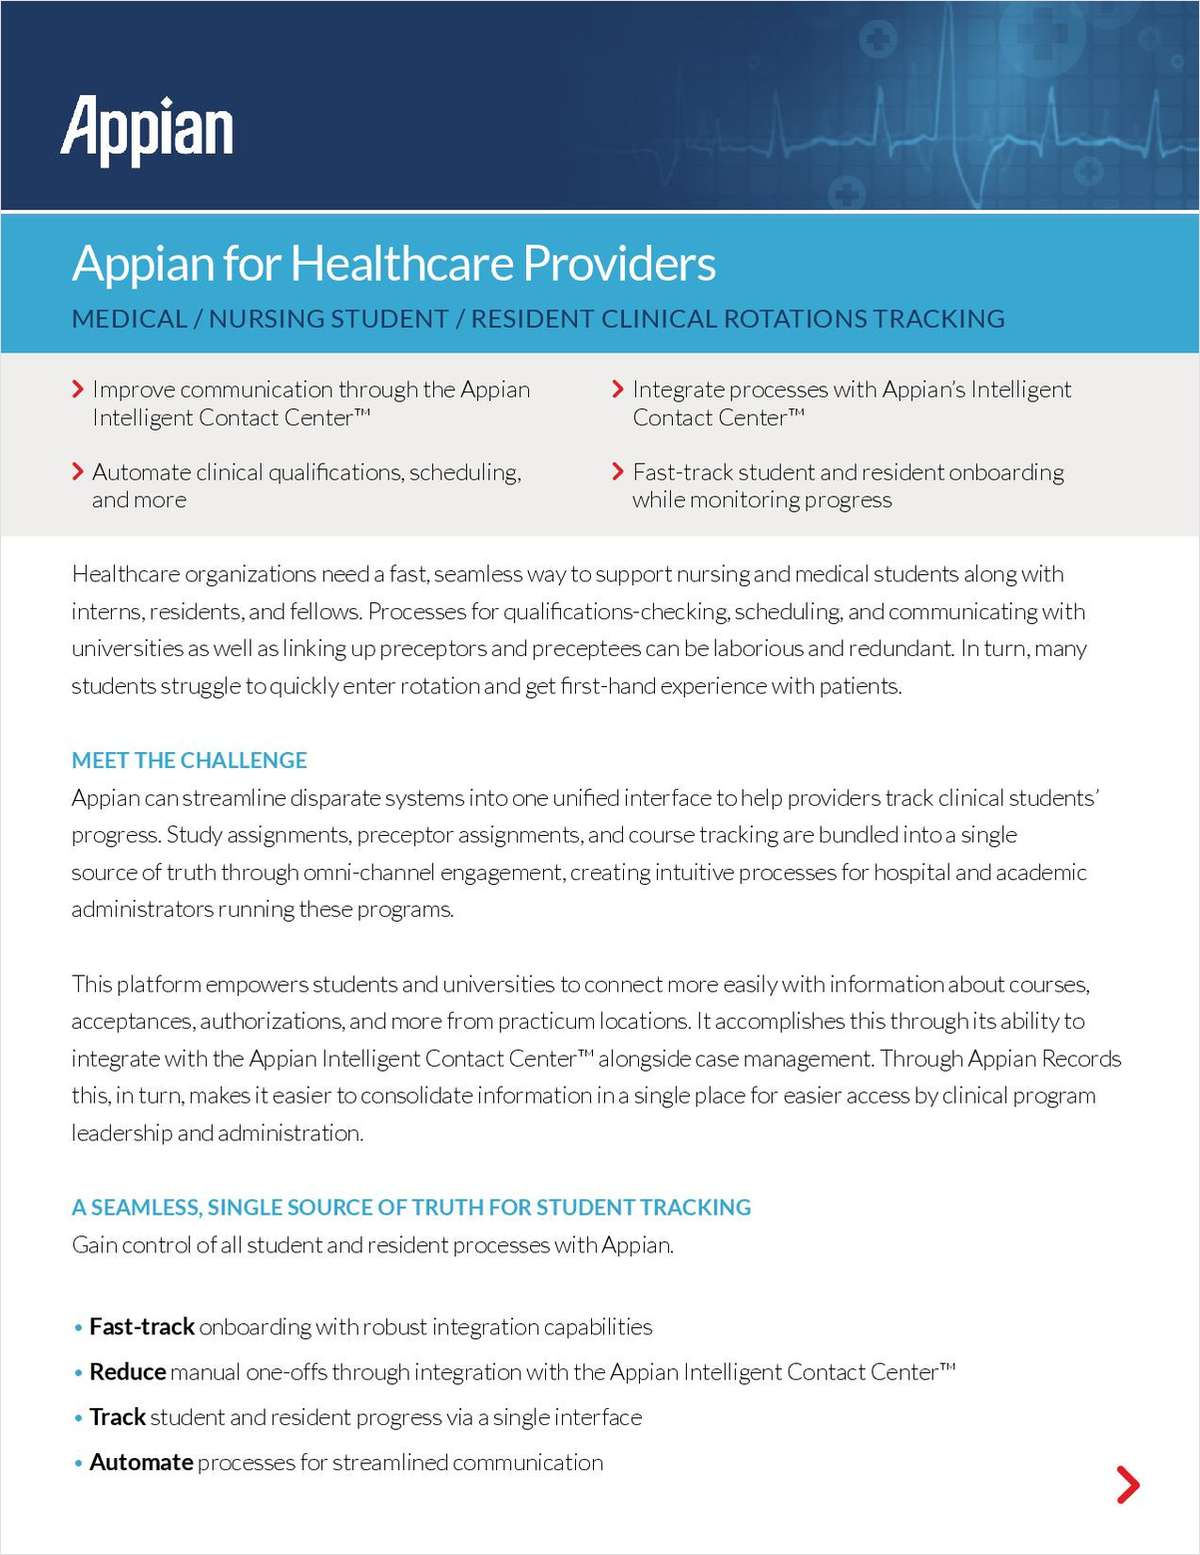 Appian for Healthcare Providers: Medical / Nursing Student / Resident Clinical Rotations Tracking